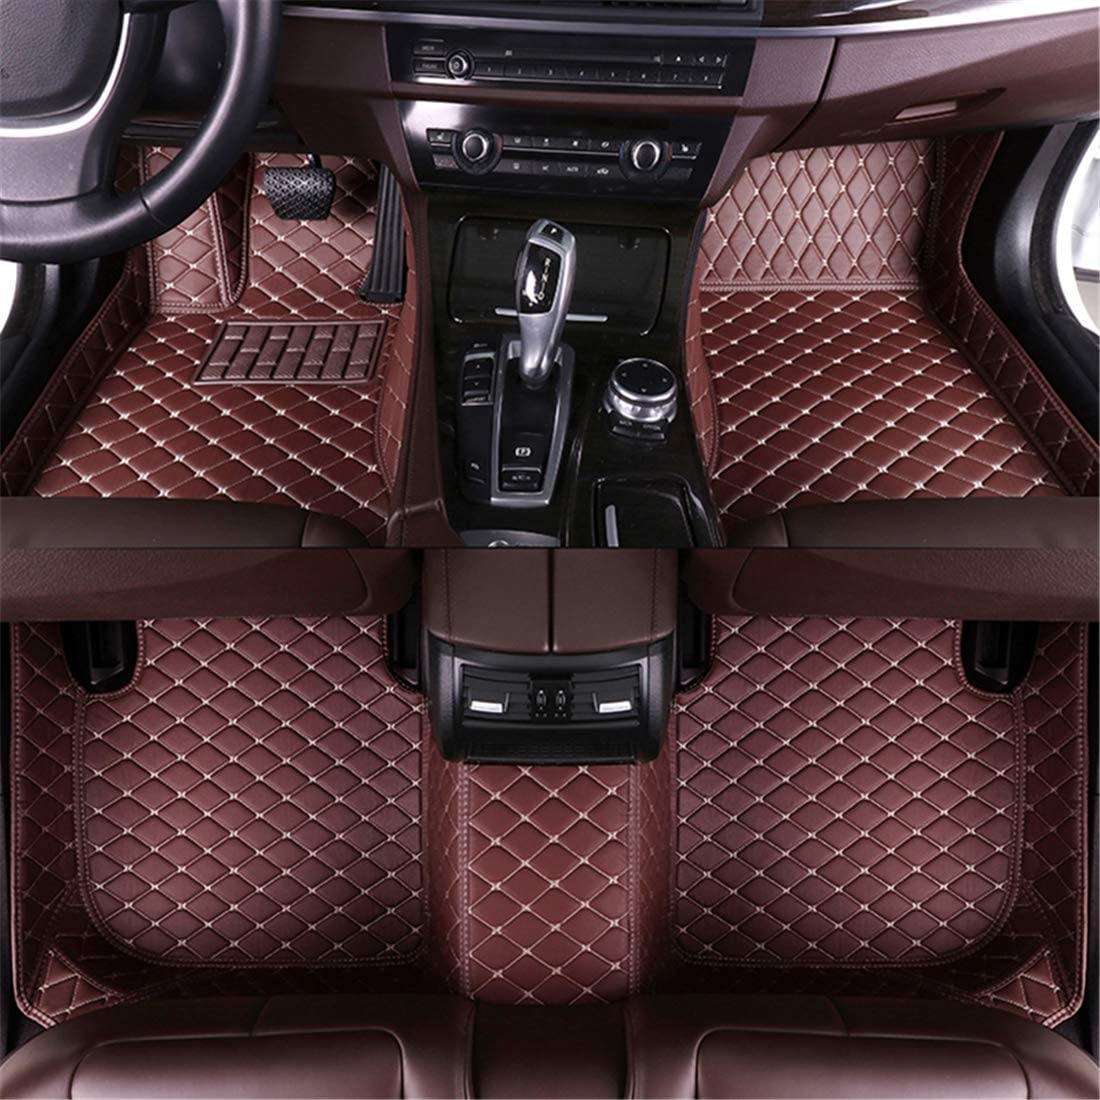 Muchkey car Floor Mats fit for Lincoln MKC 2013-2019 Full Coverage All Weather Protection Non-Slip Leather Floor Liners Black-Beige